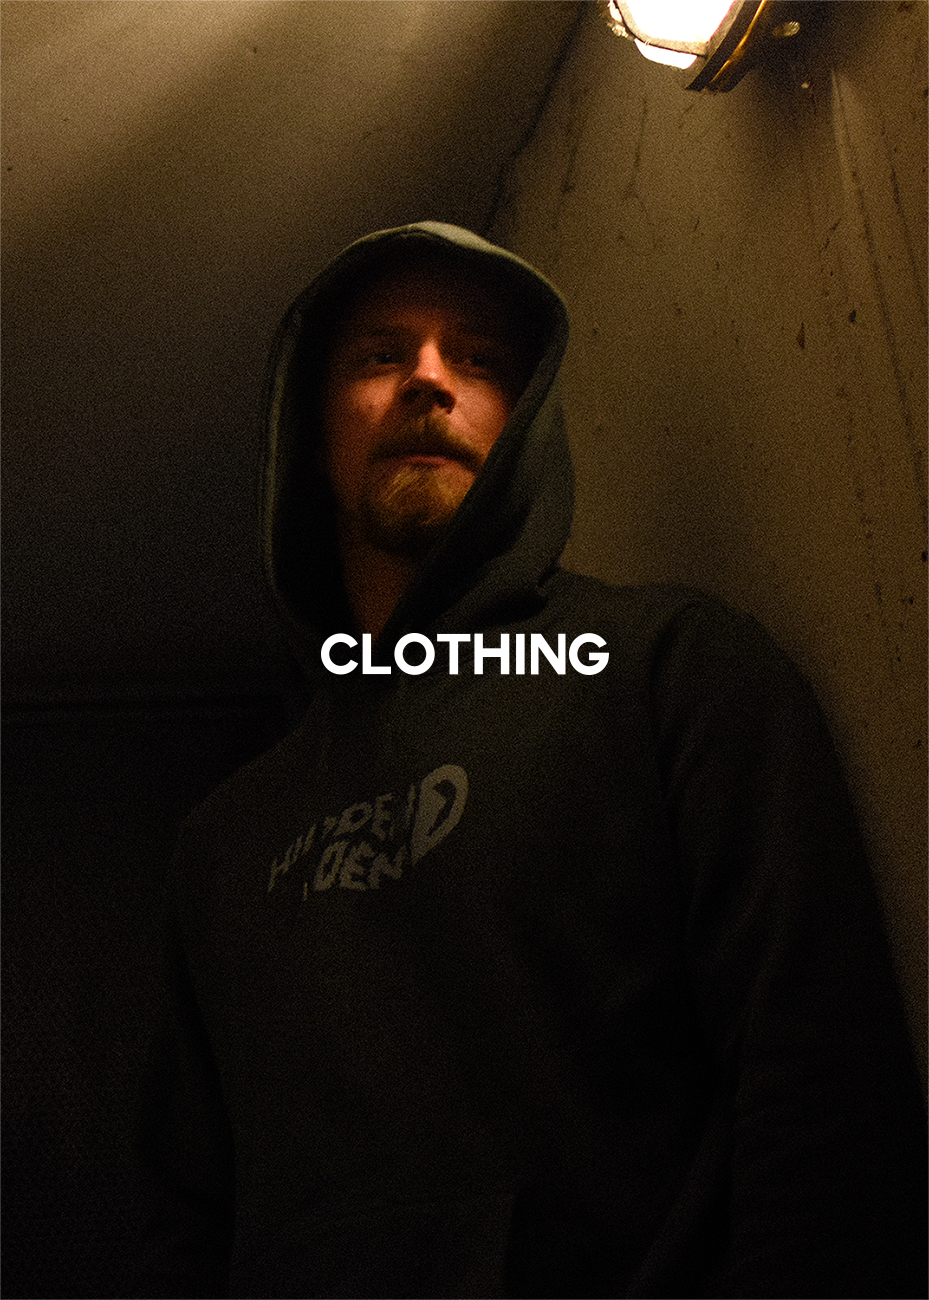 Hidden-den - CLOTHING